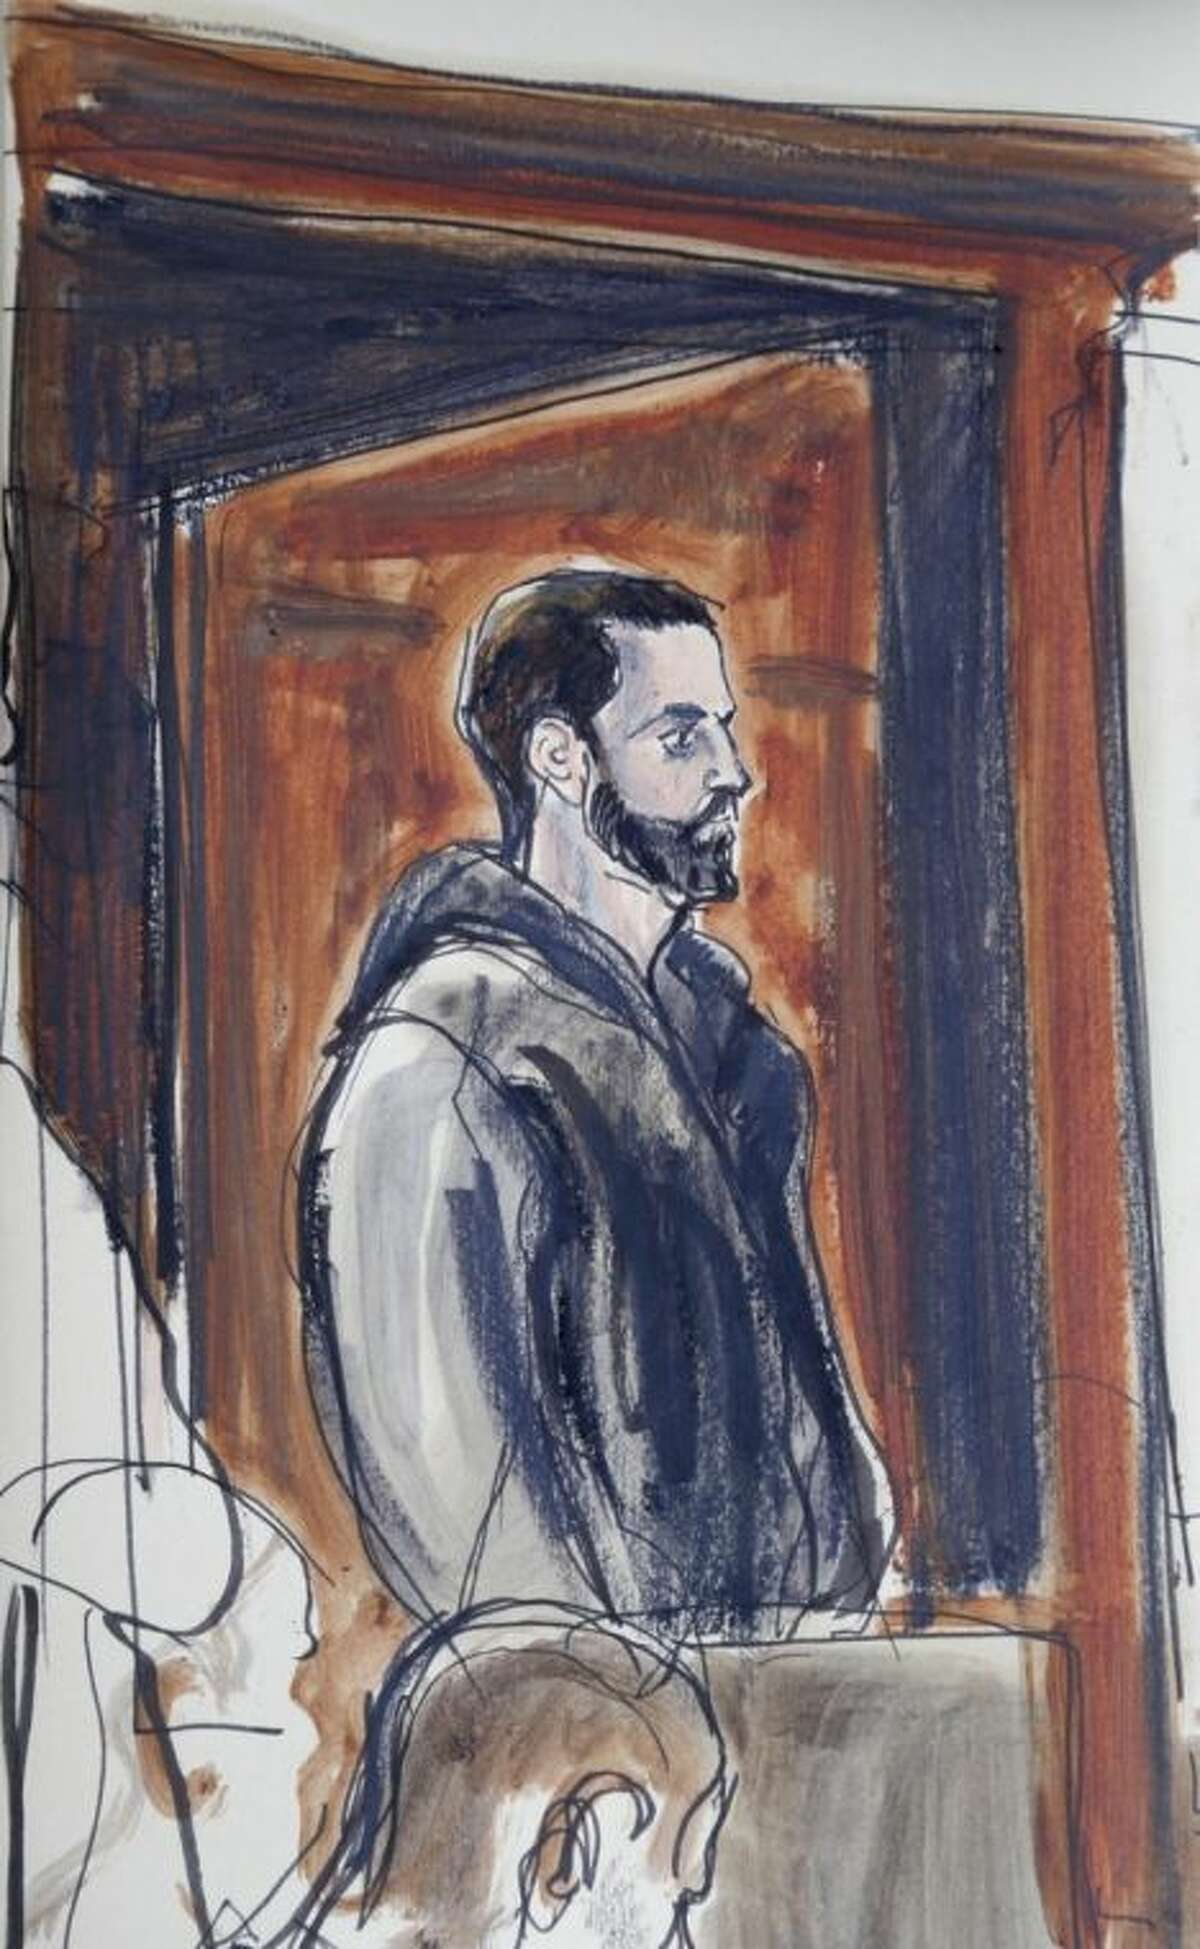 In a court sketch Wojciech Braszczok is seen in criminal court in New York, Wednesday, Oct. 9, 2013. Braszczok, an undercover police detective, was arrested as fallout from a burst of motorcyclist mayhem reached a new level, with investigators saying the officer was shown on video hitting and kicking an SUV before bikers attacked its driver. (AP Photo/Elizabeth Wiliams)